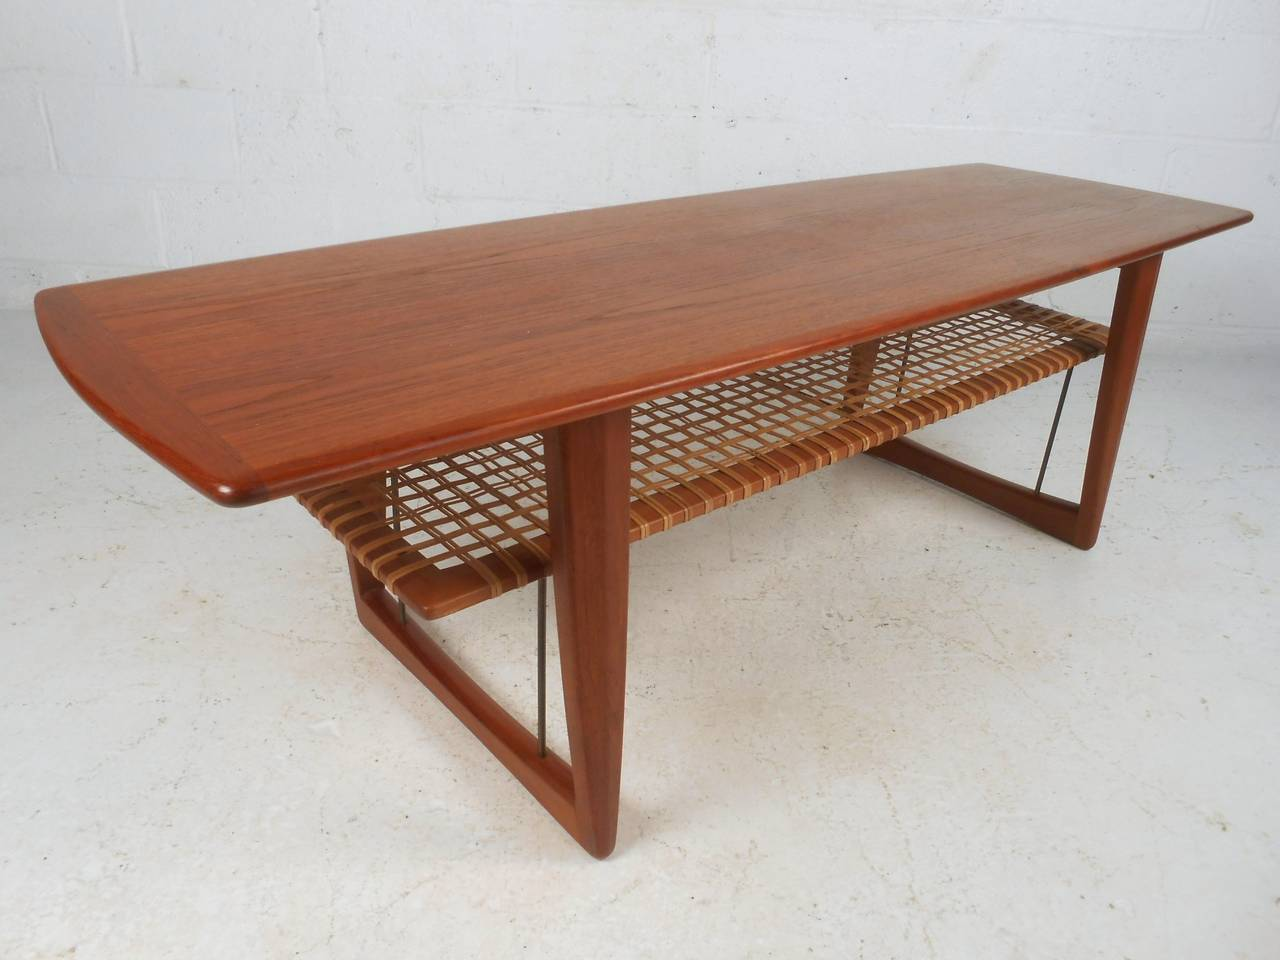 This Beautiful Teak Coffee Table Features Unique Sled Legs Cane Shelf And A